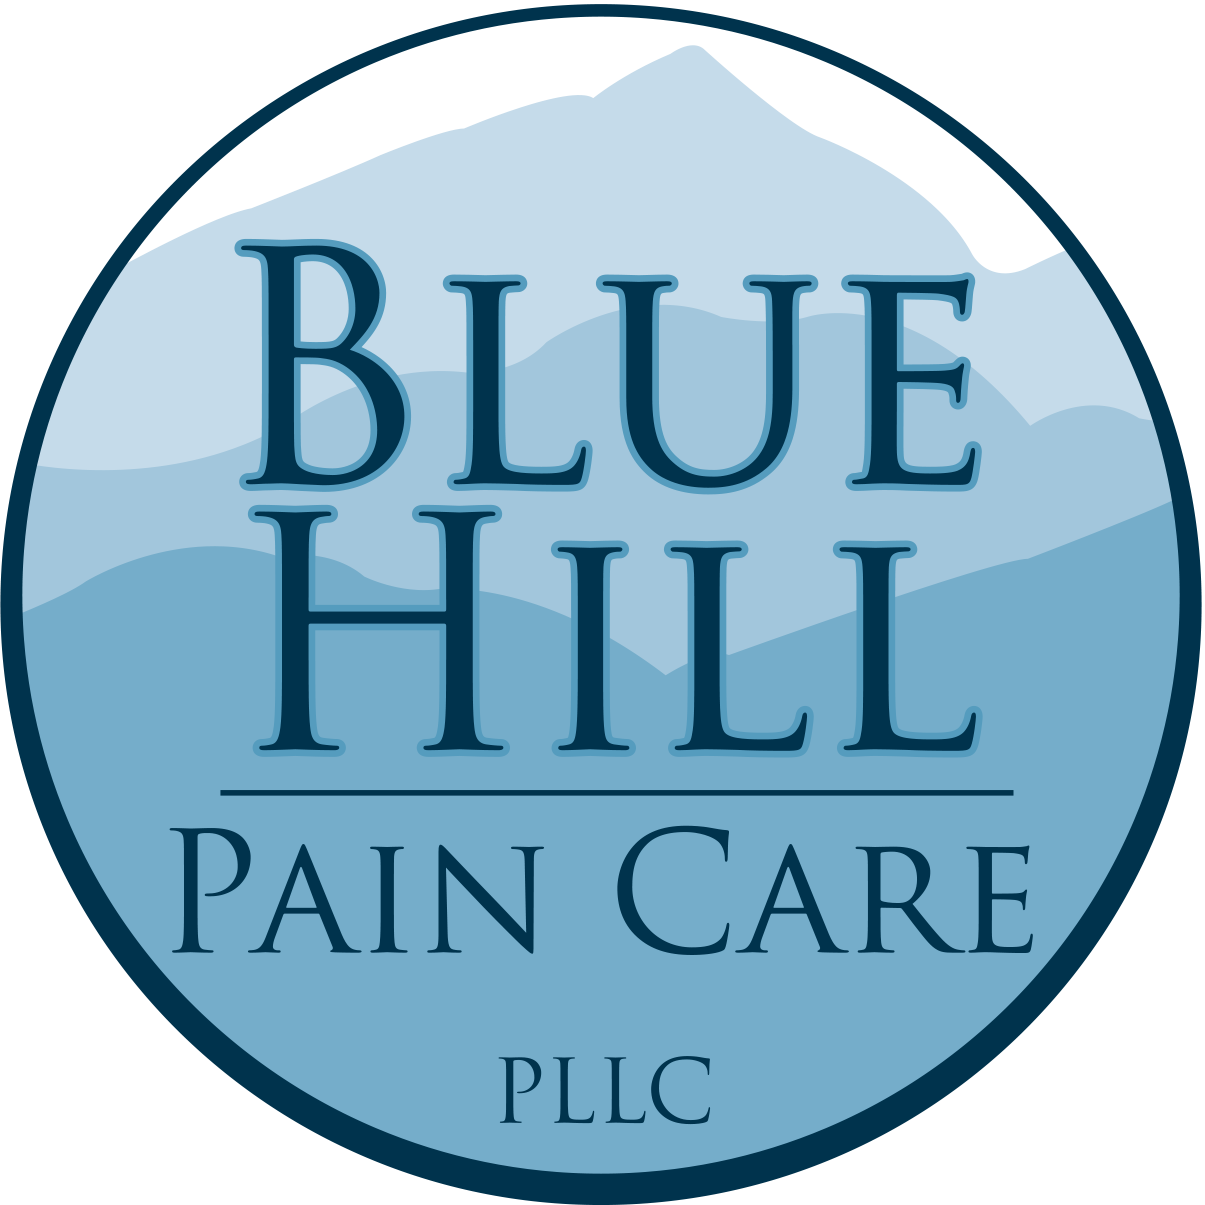 Blue Hill Pain Care, PLLC